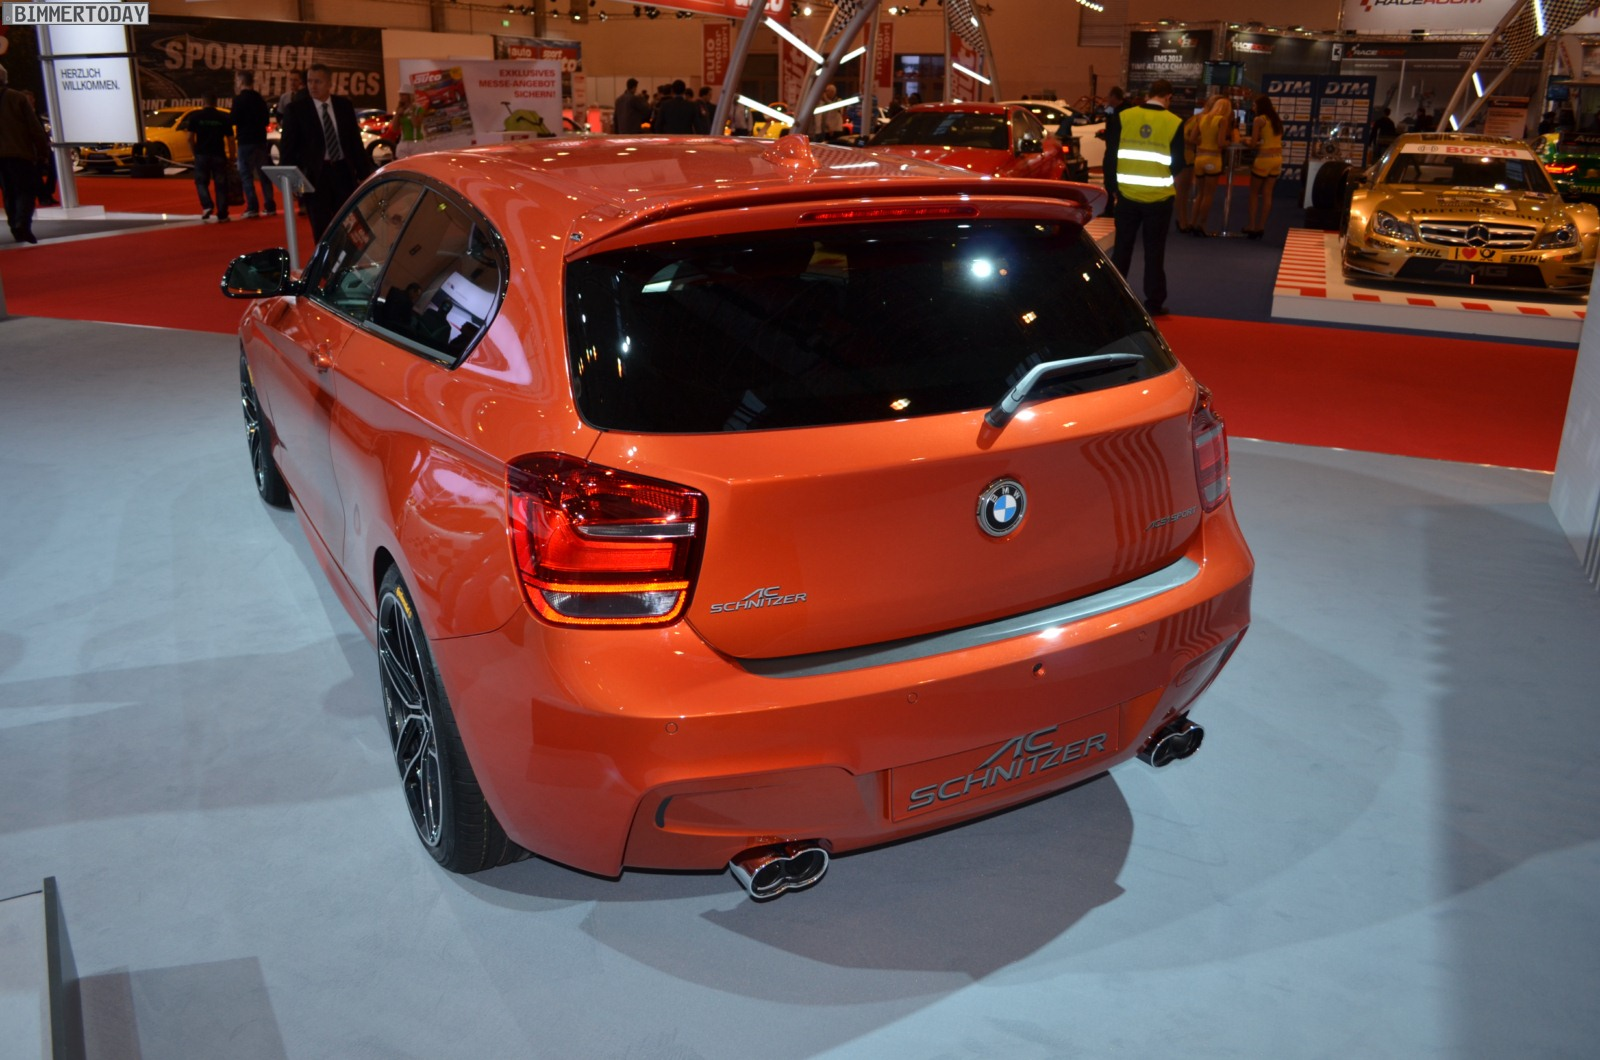 2012 essen motor show ac schnitzer bmw m135i in valencia. Black Bedroom Furniture Sets. Home Design Ideas